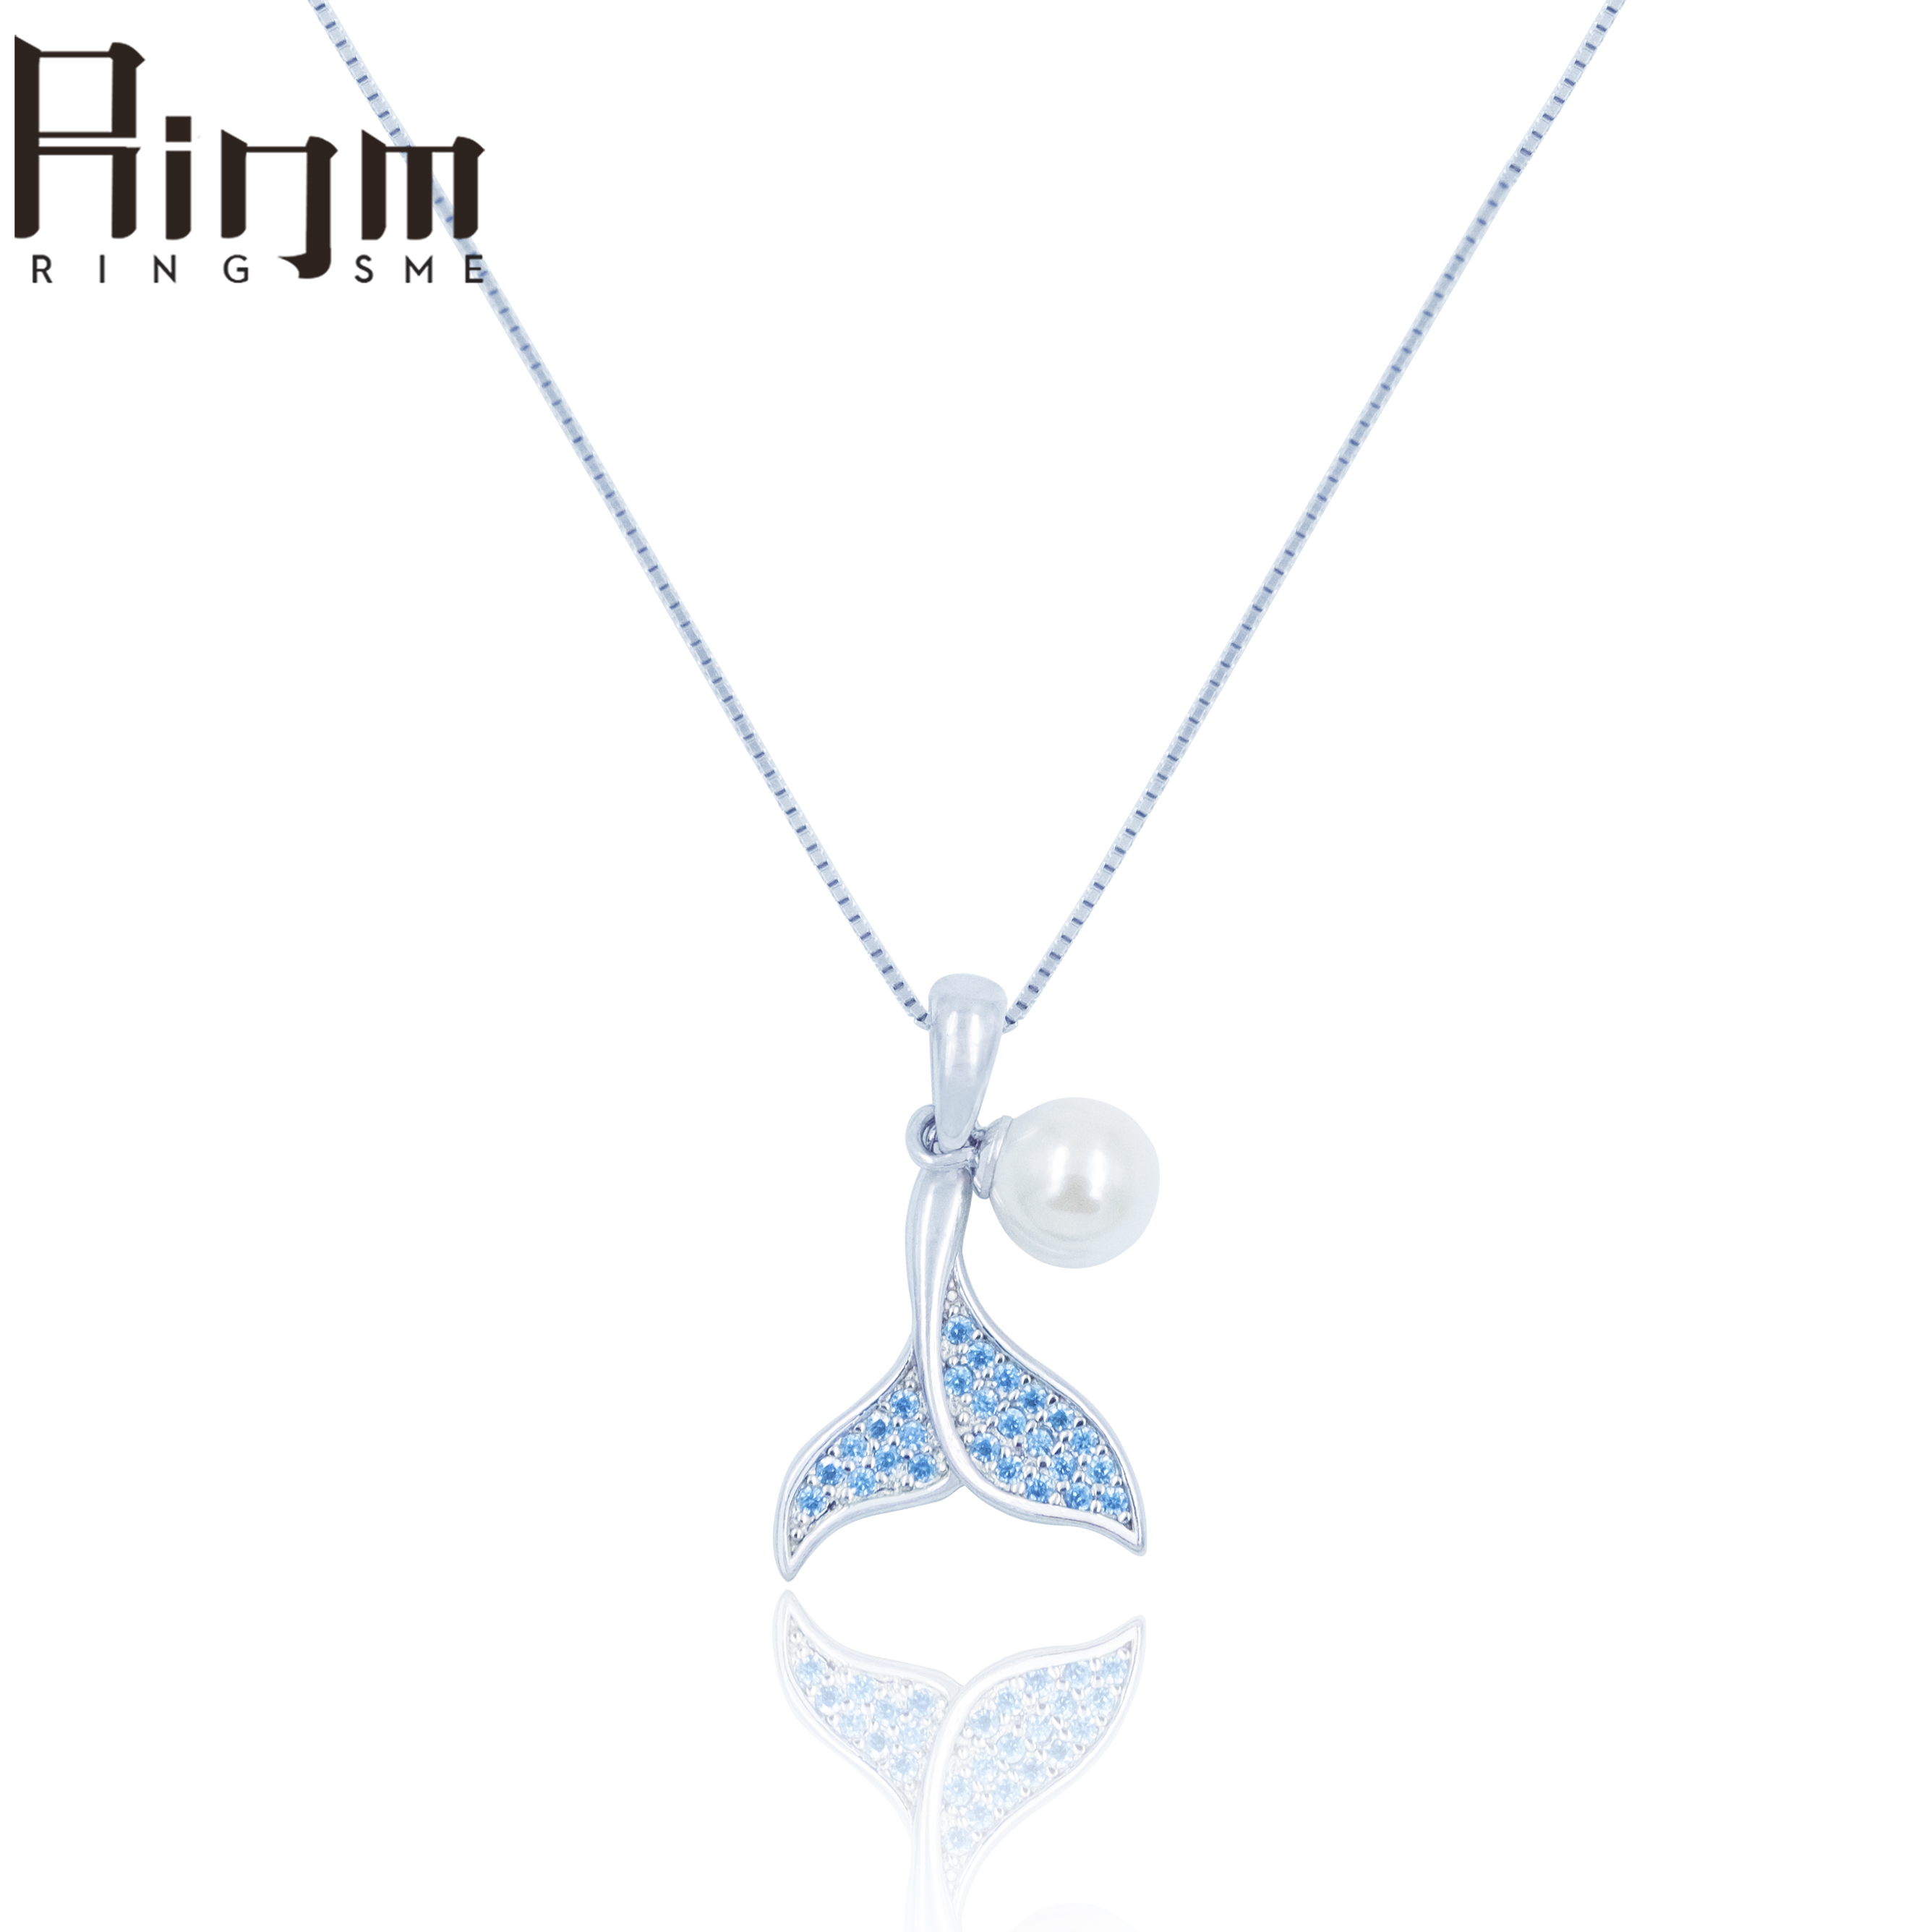 Ringsme whale pearl light luxury blue zirconium Sterling Silver clavicle Necklace